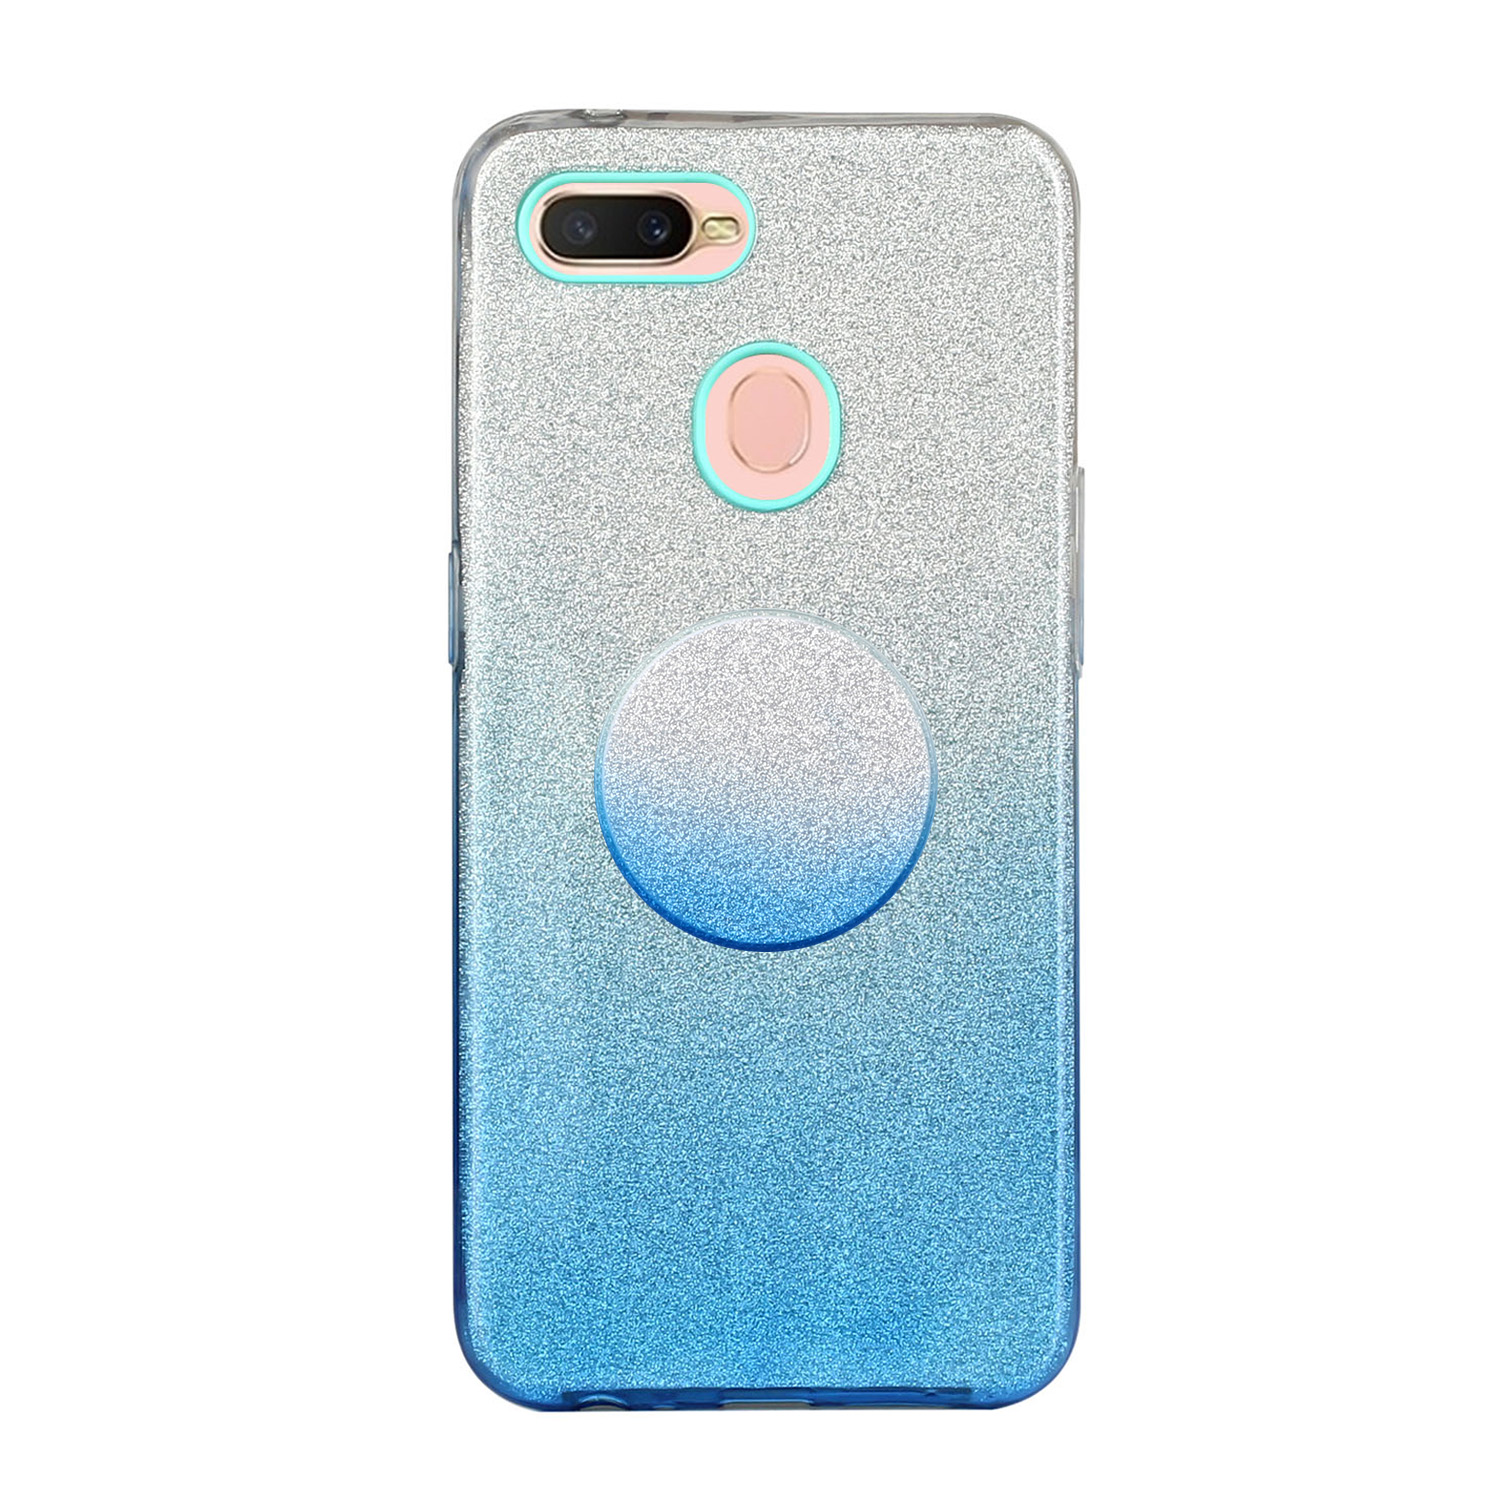 For OPPO F9/F9 Pro/A7X/F11 Pro/A8/A31 Phone Case Gradient Color Glitter Powder Phone Cover with Airbag Bracket blue